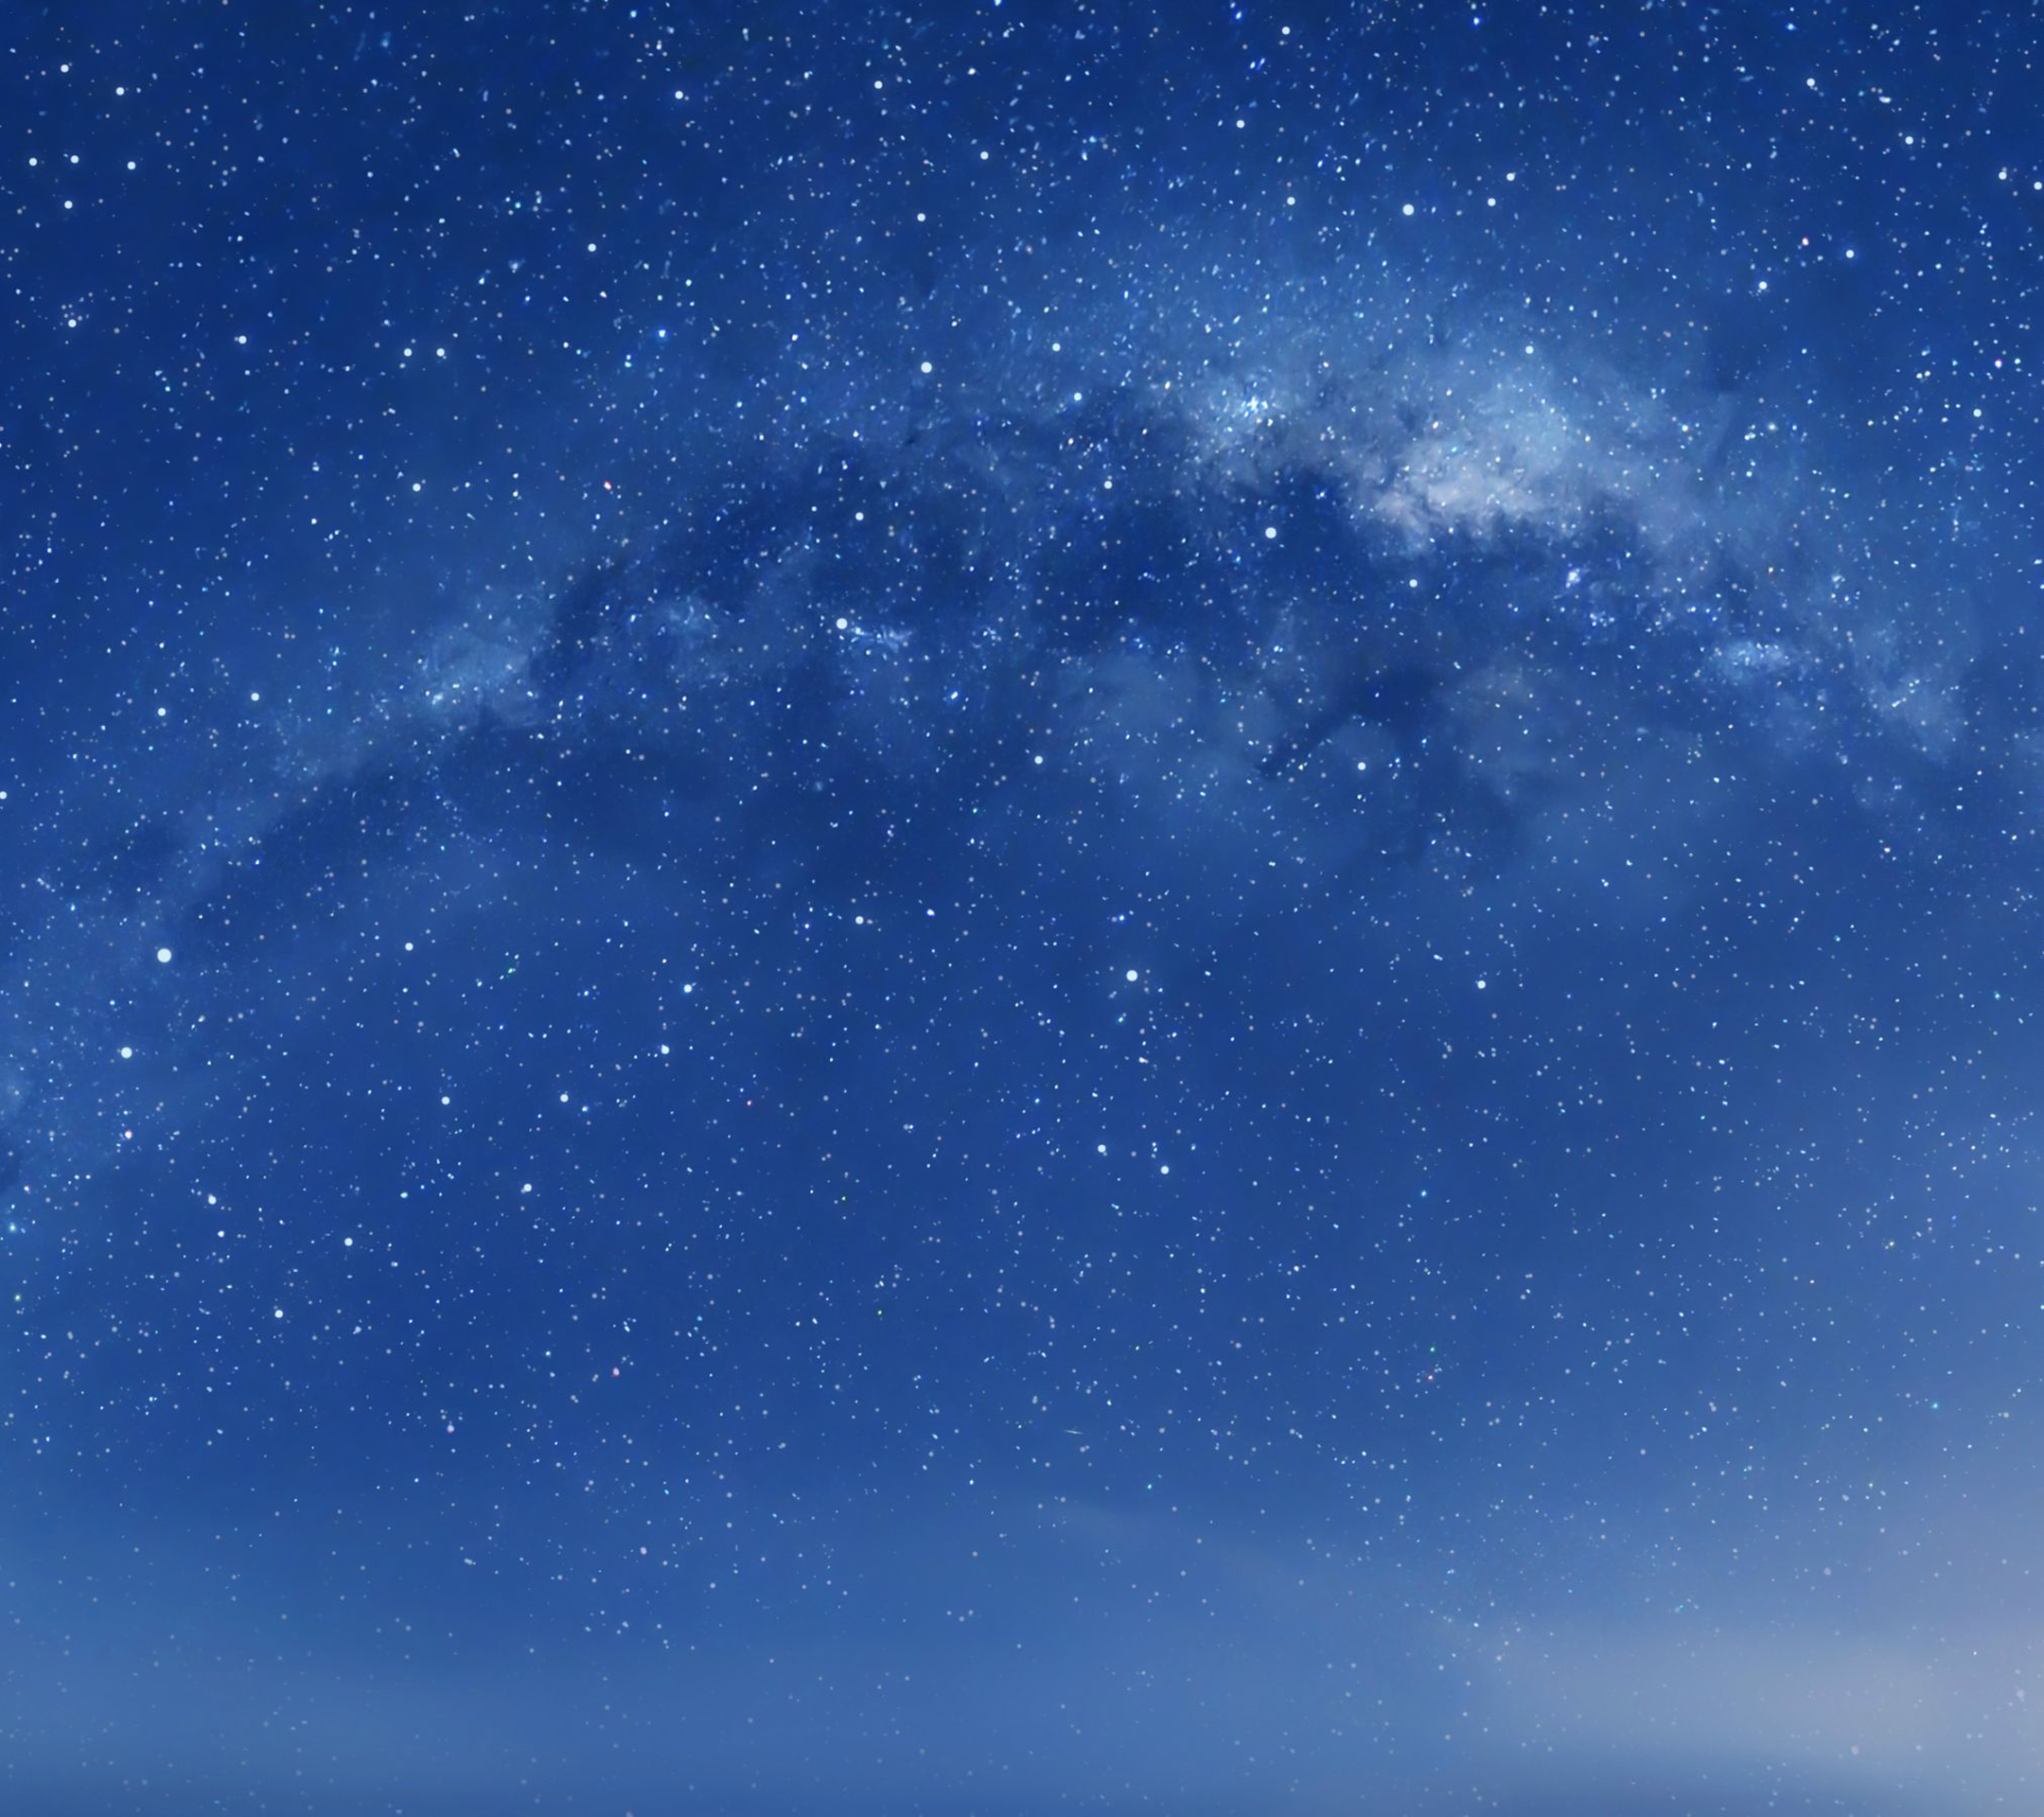 Apple iOS 8 Default Milky Way Galaxy Desktop 4K Wallpaper